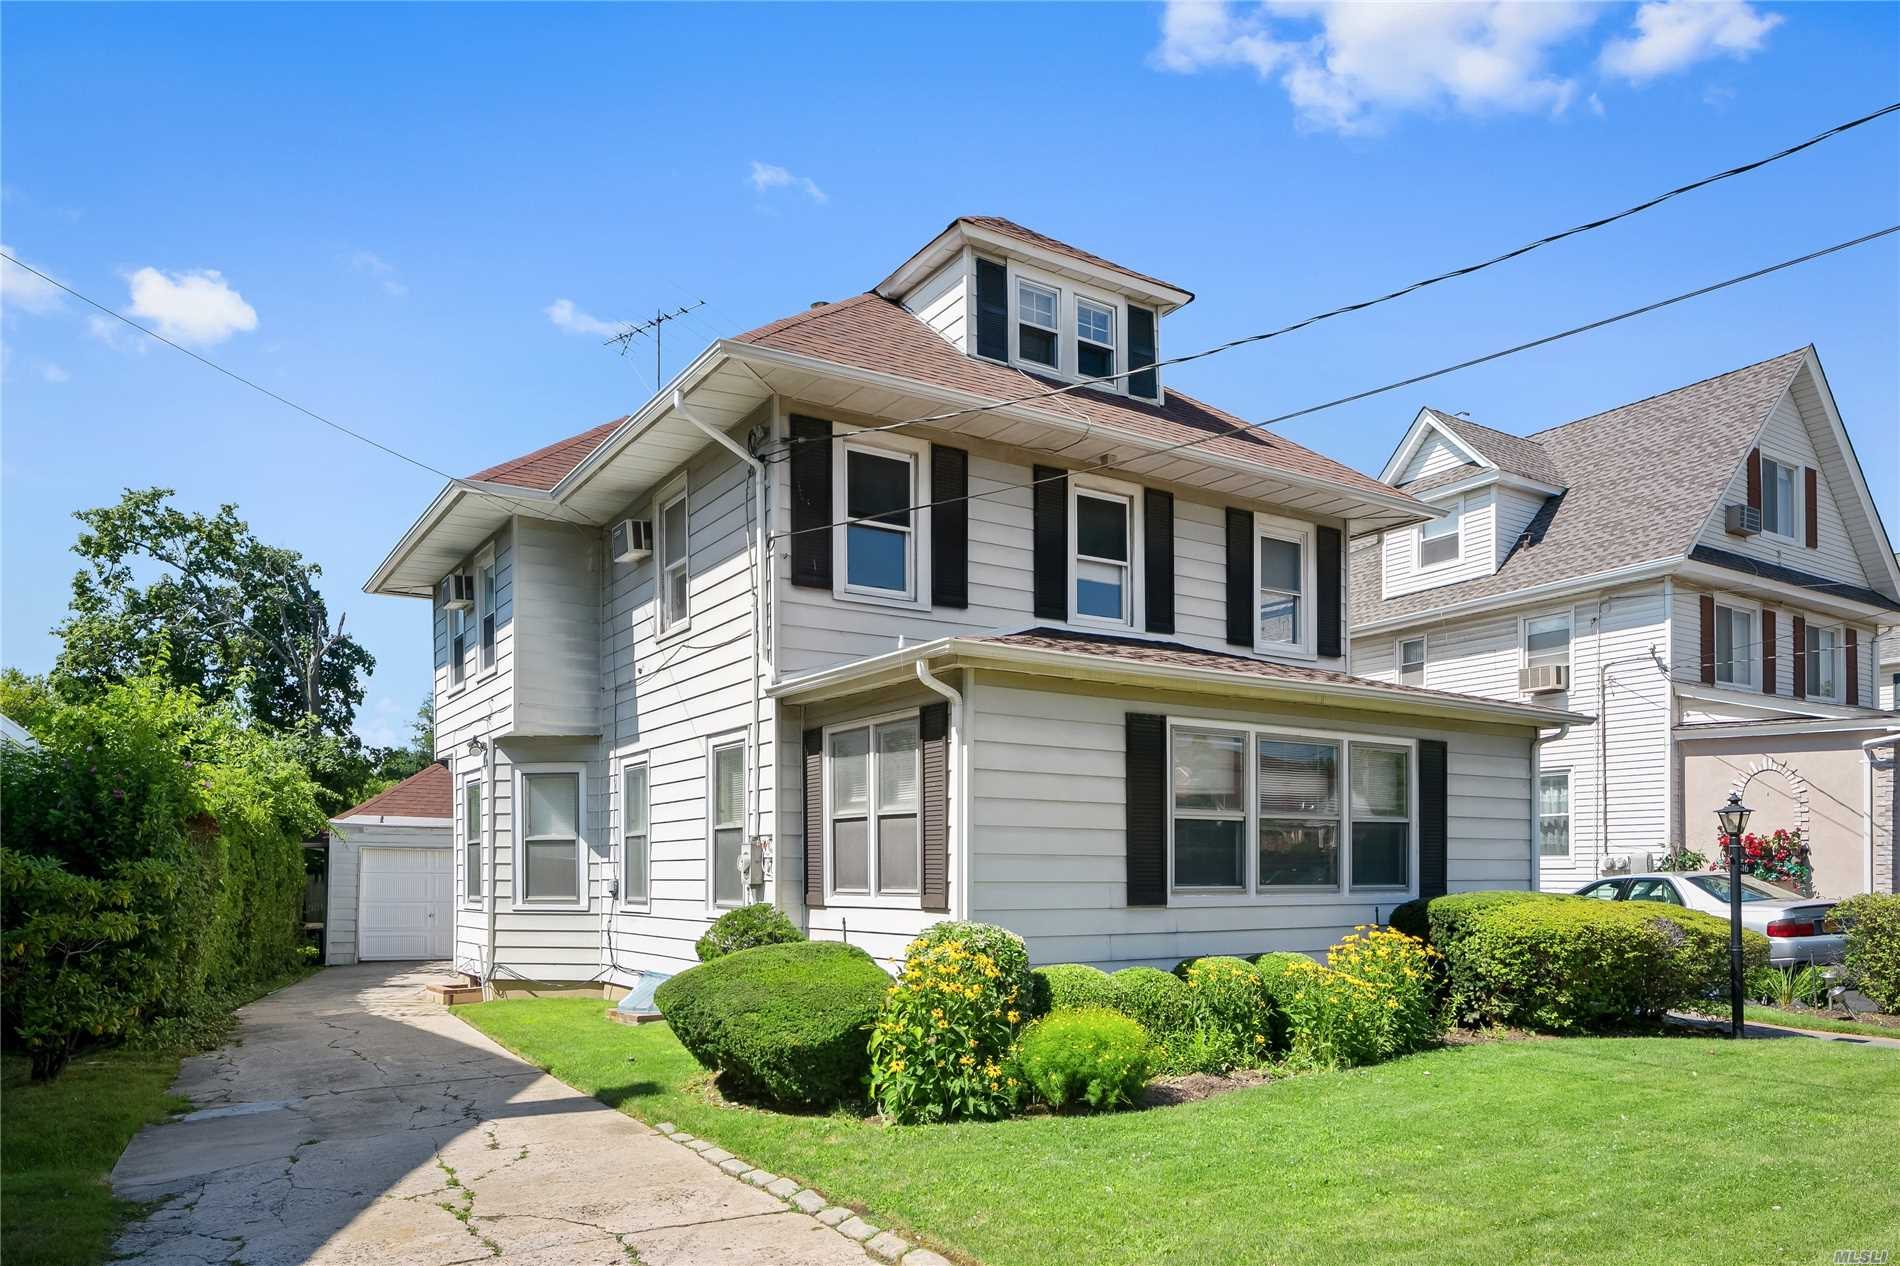 Nice Colonial Home With High Ceilingsand Crown Moldings, 5 Br, 2 Full Baths, Eik, Lr, Dr, Gas Cooking And Heating, Partially Finished Basement, , Hardwood Floors Throughout Home, Finished Attic With Small Br And Stairway, New Patio Pavers, Detached Garage, Walk To Lirr And Many Homes Of Worship.